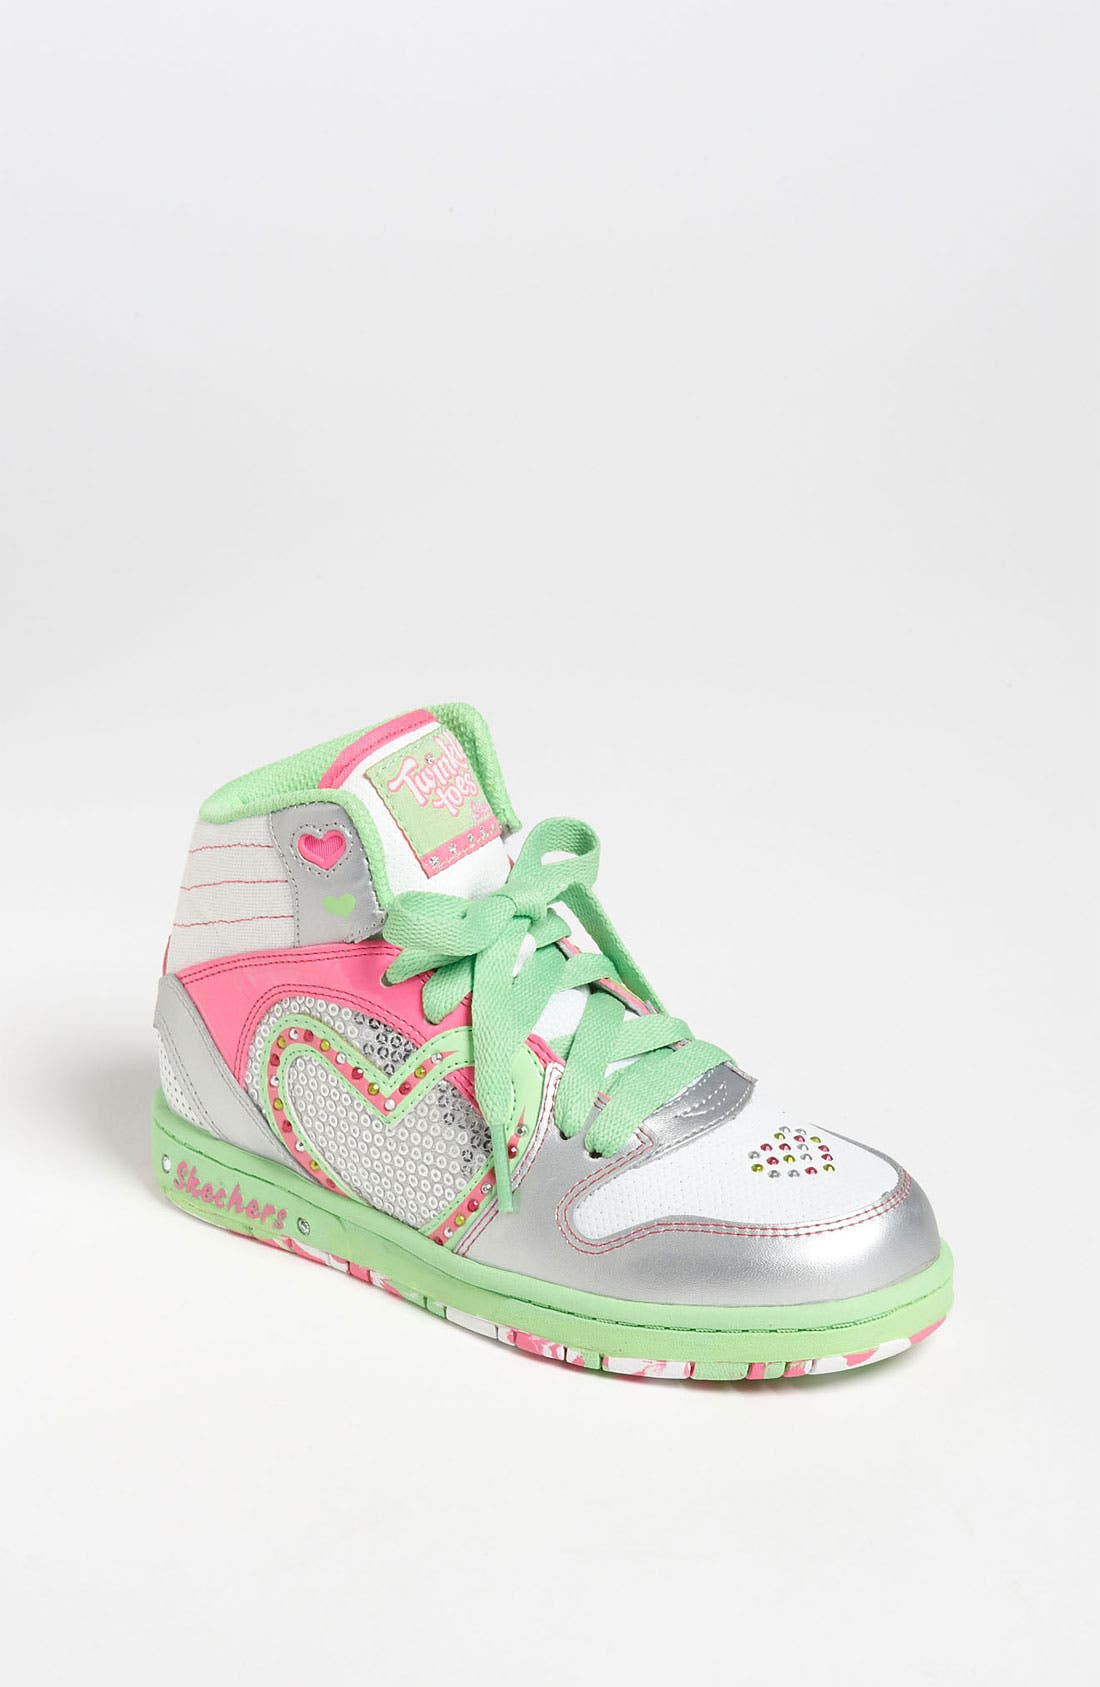 Alternate Image 1 Selected - SKECHERS 'Twinkle Toes - Heart N' Soul' Sneaker (Toddler, Little Kid & Big Kid)